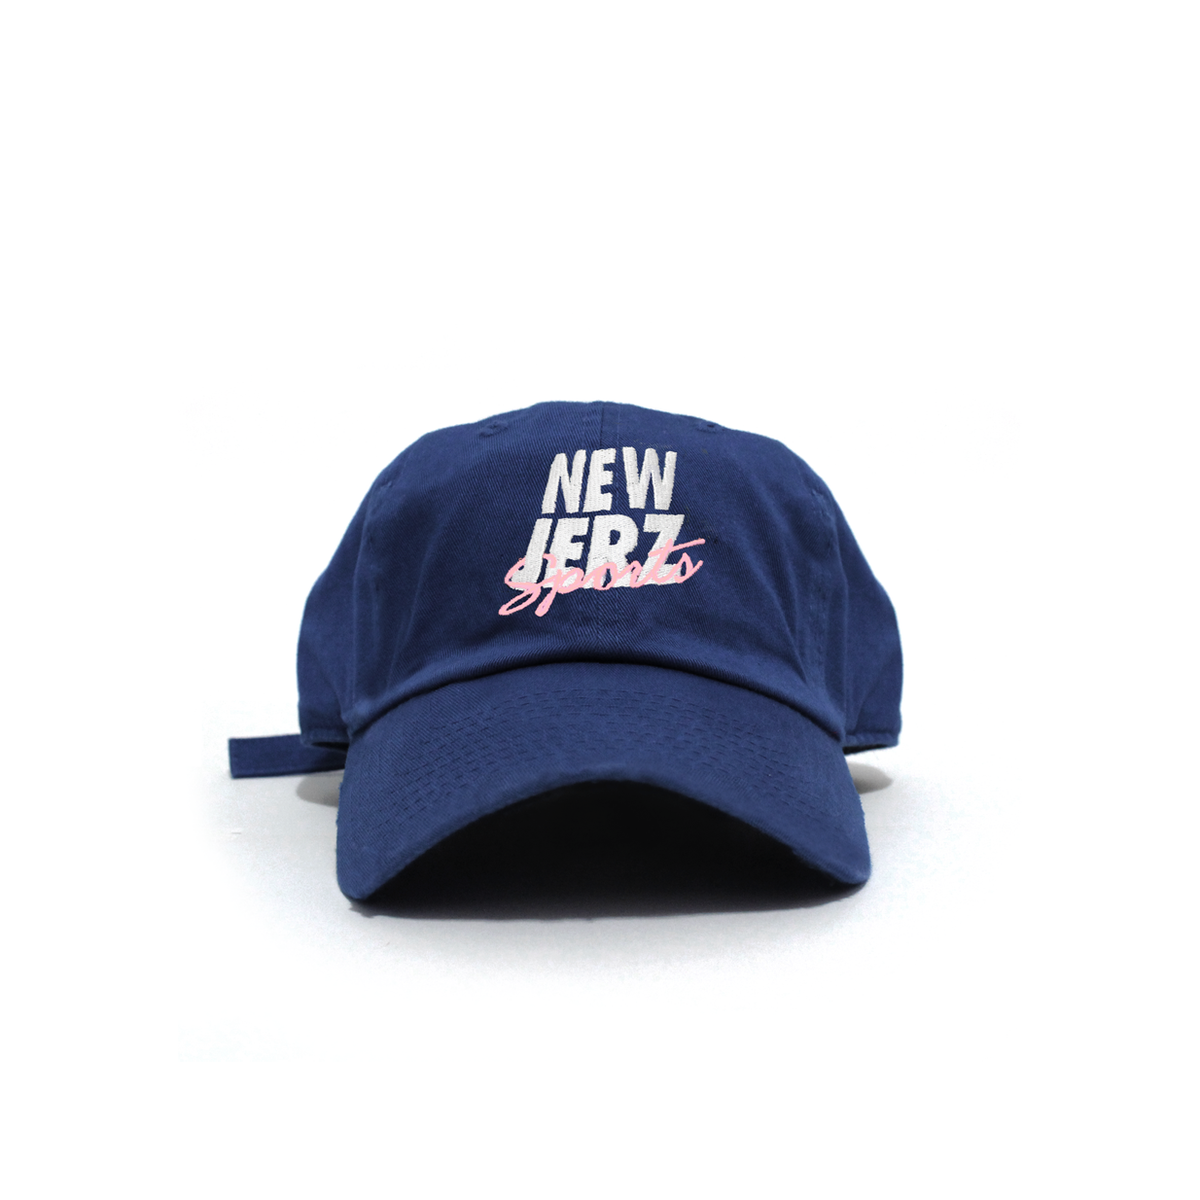 Image of New Jerz Sports Cap - Navy